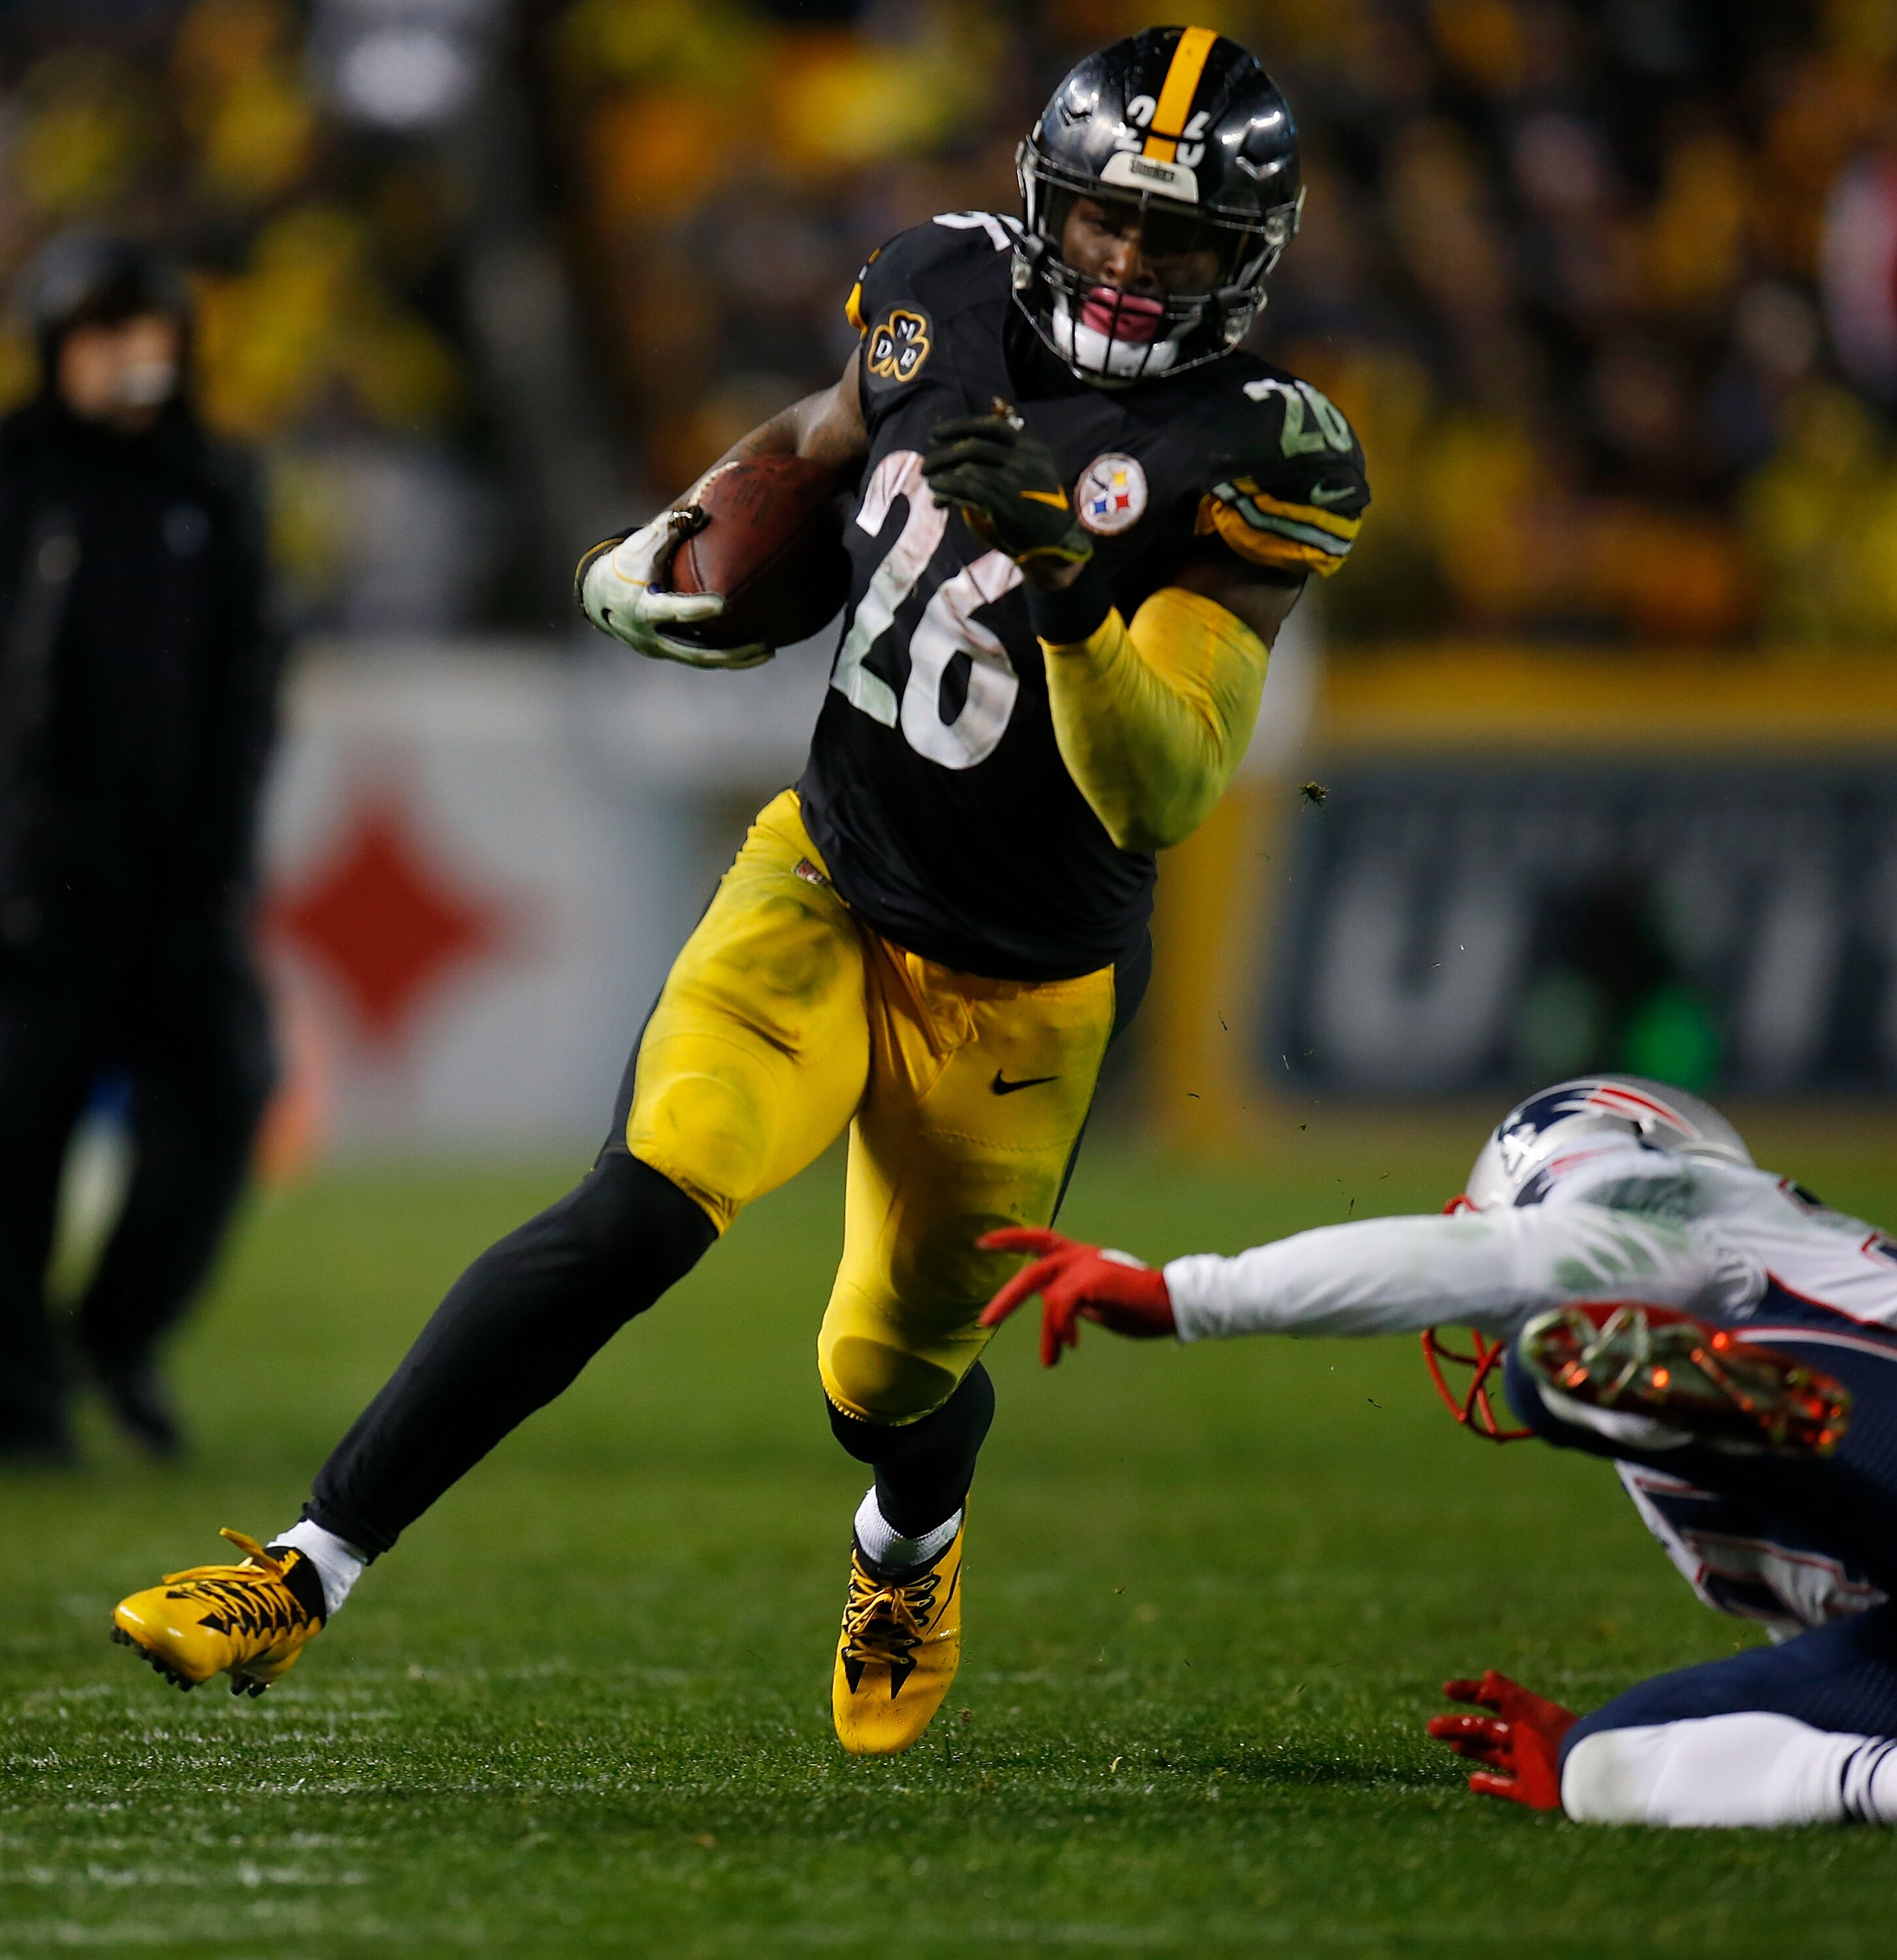 Christmas Day Nfl Football Schedule 2020 | Kzemeh.2020christmasday